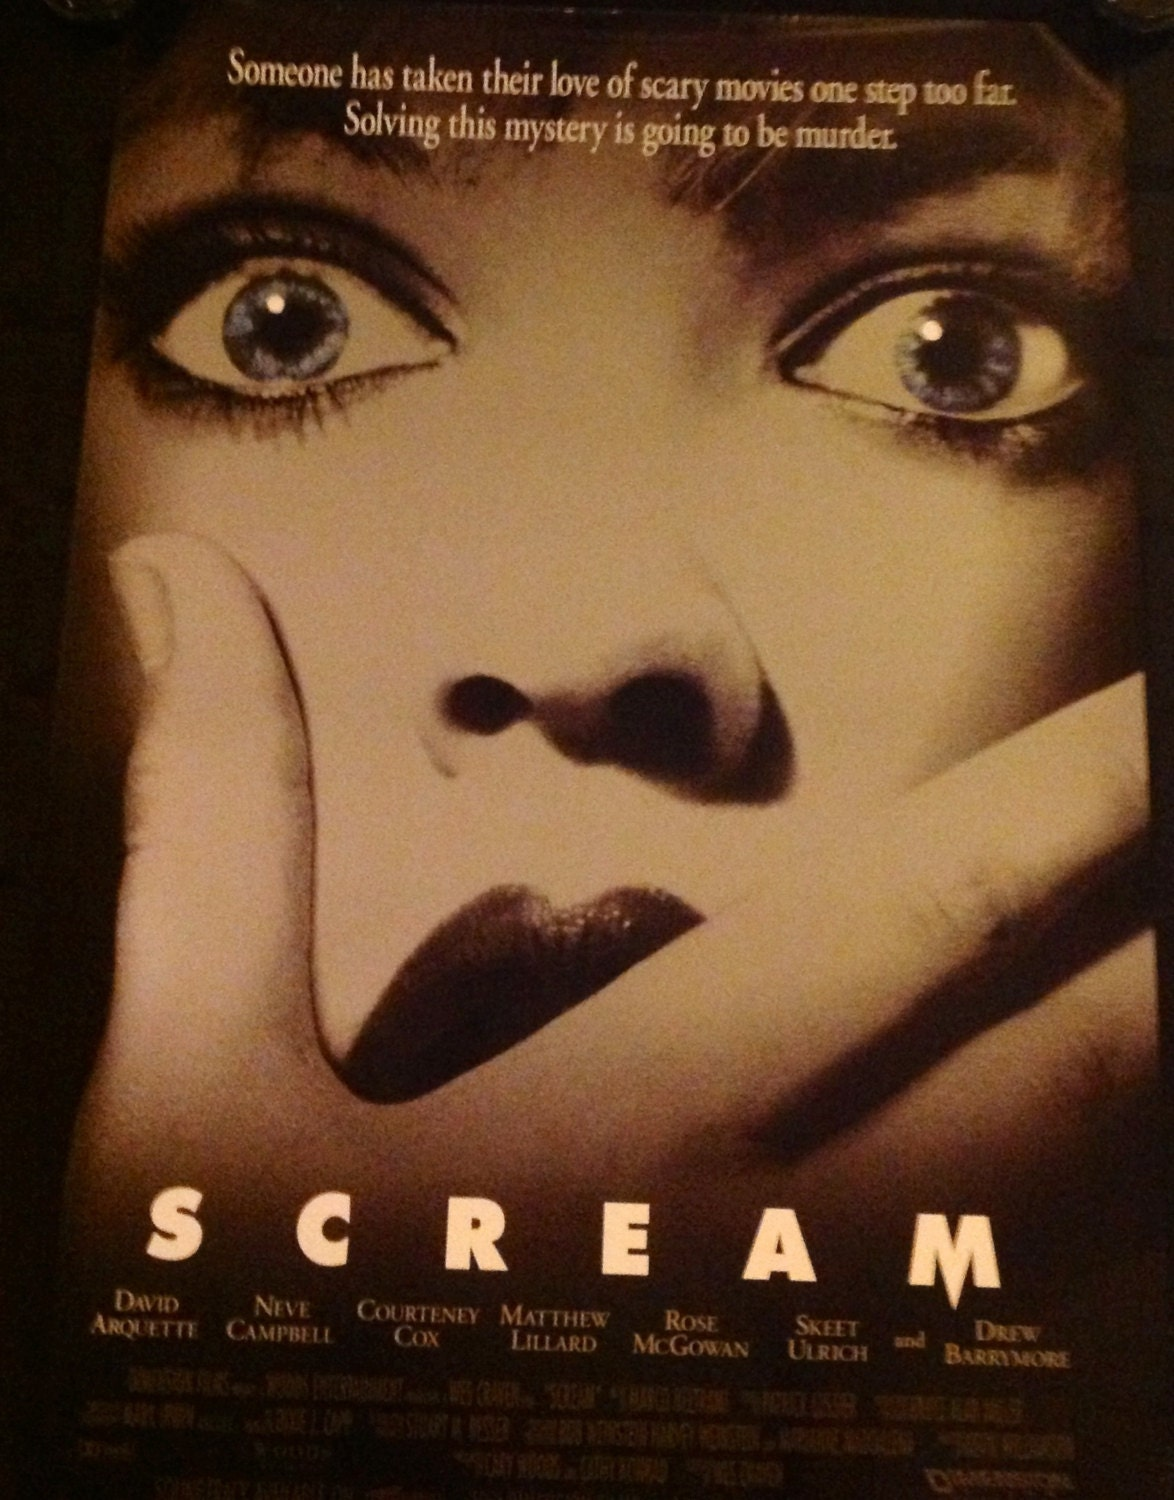 1996 movie poster gallery